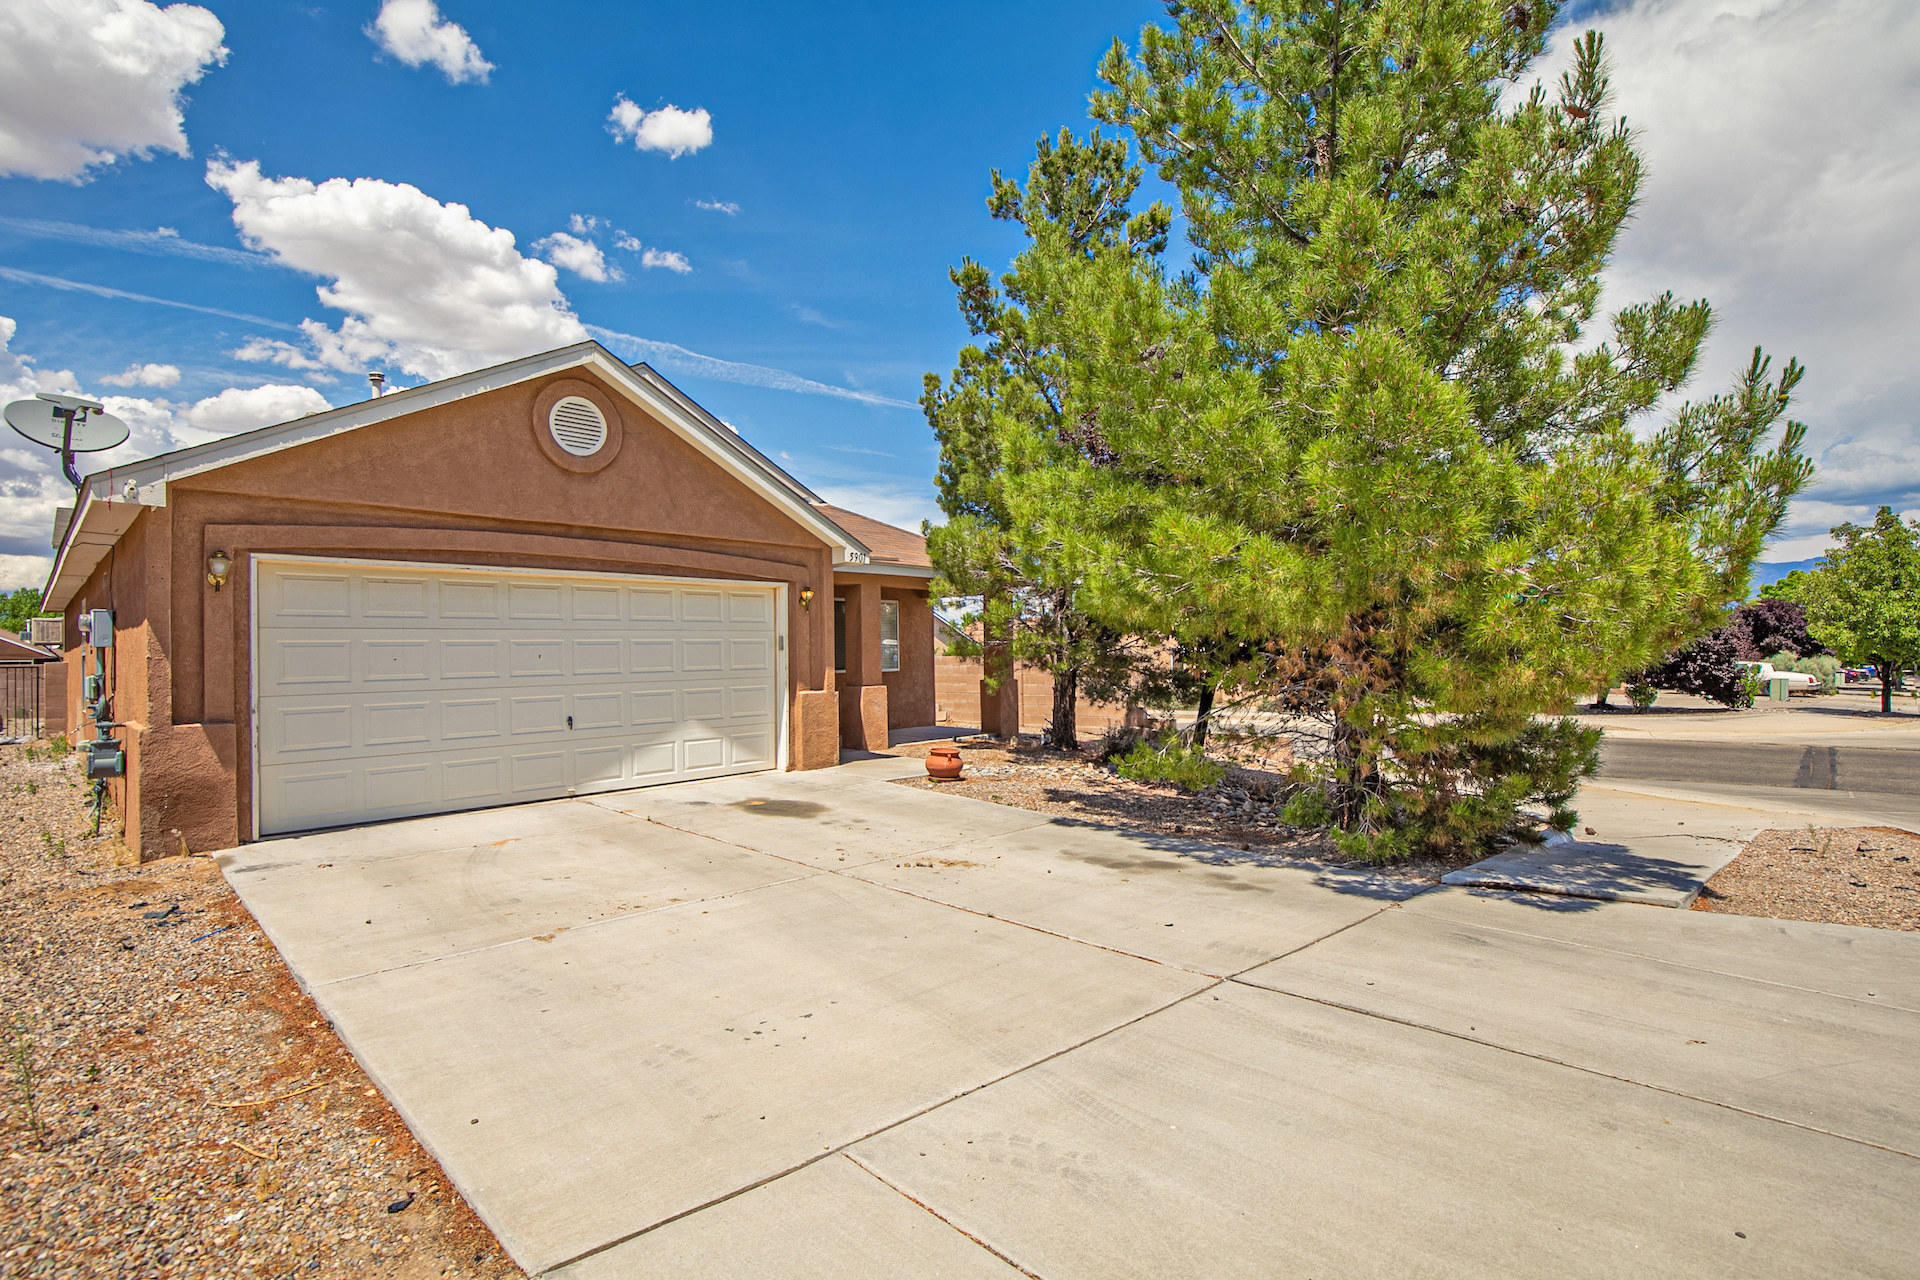 Corner Lot home! With newer carpet in bedrooms(2018). Updated light fixtures throughout the house. Near Movies, breweries, restaurants, fitness centers, as well as Rust Medical Center!